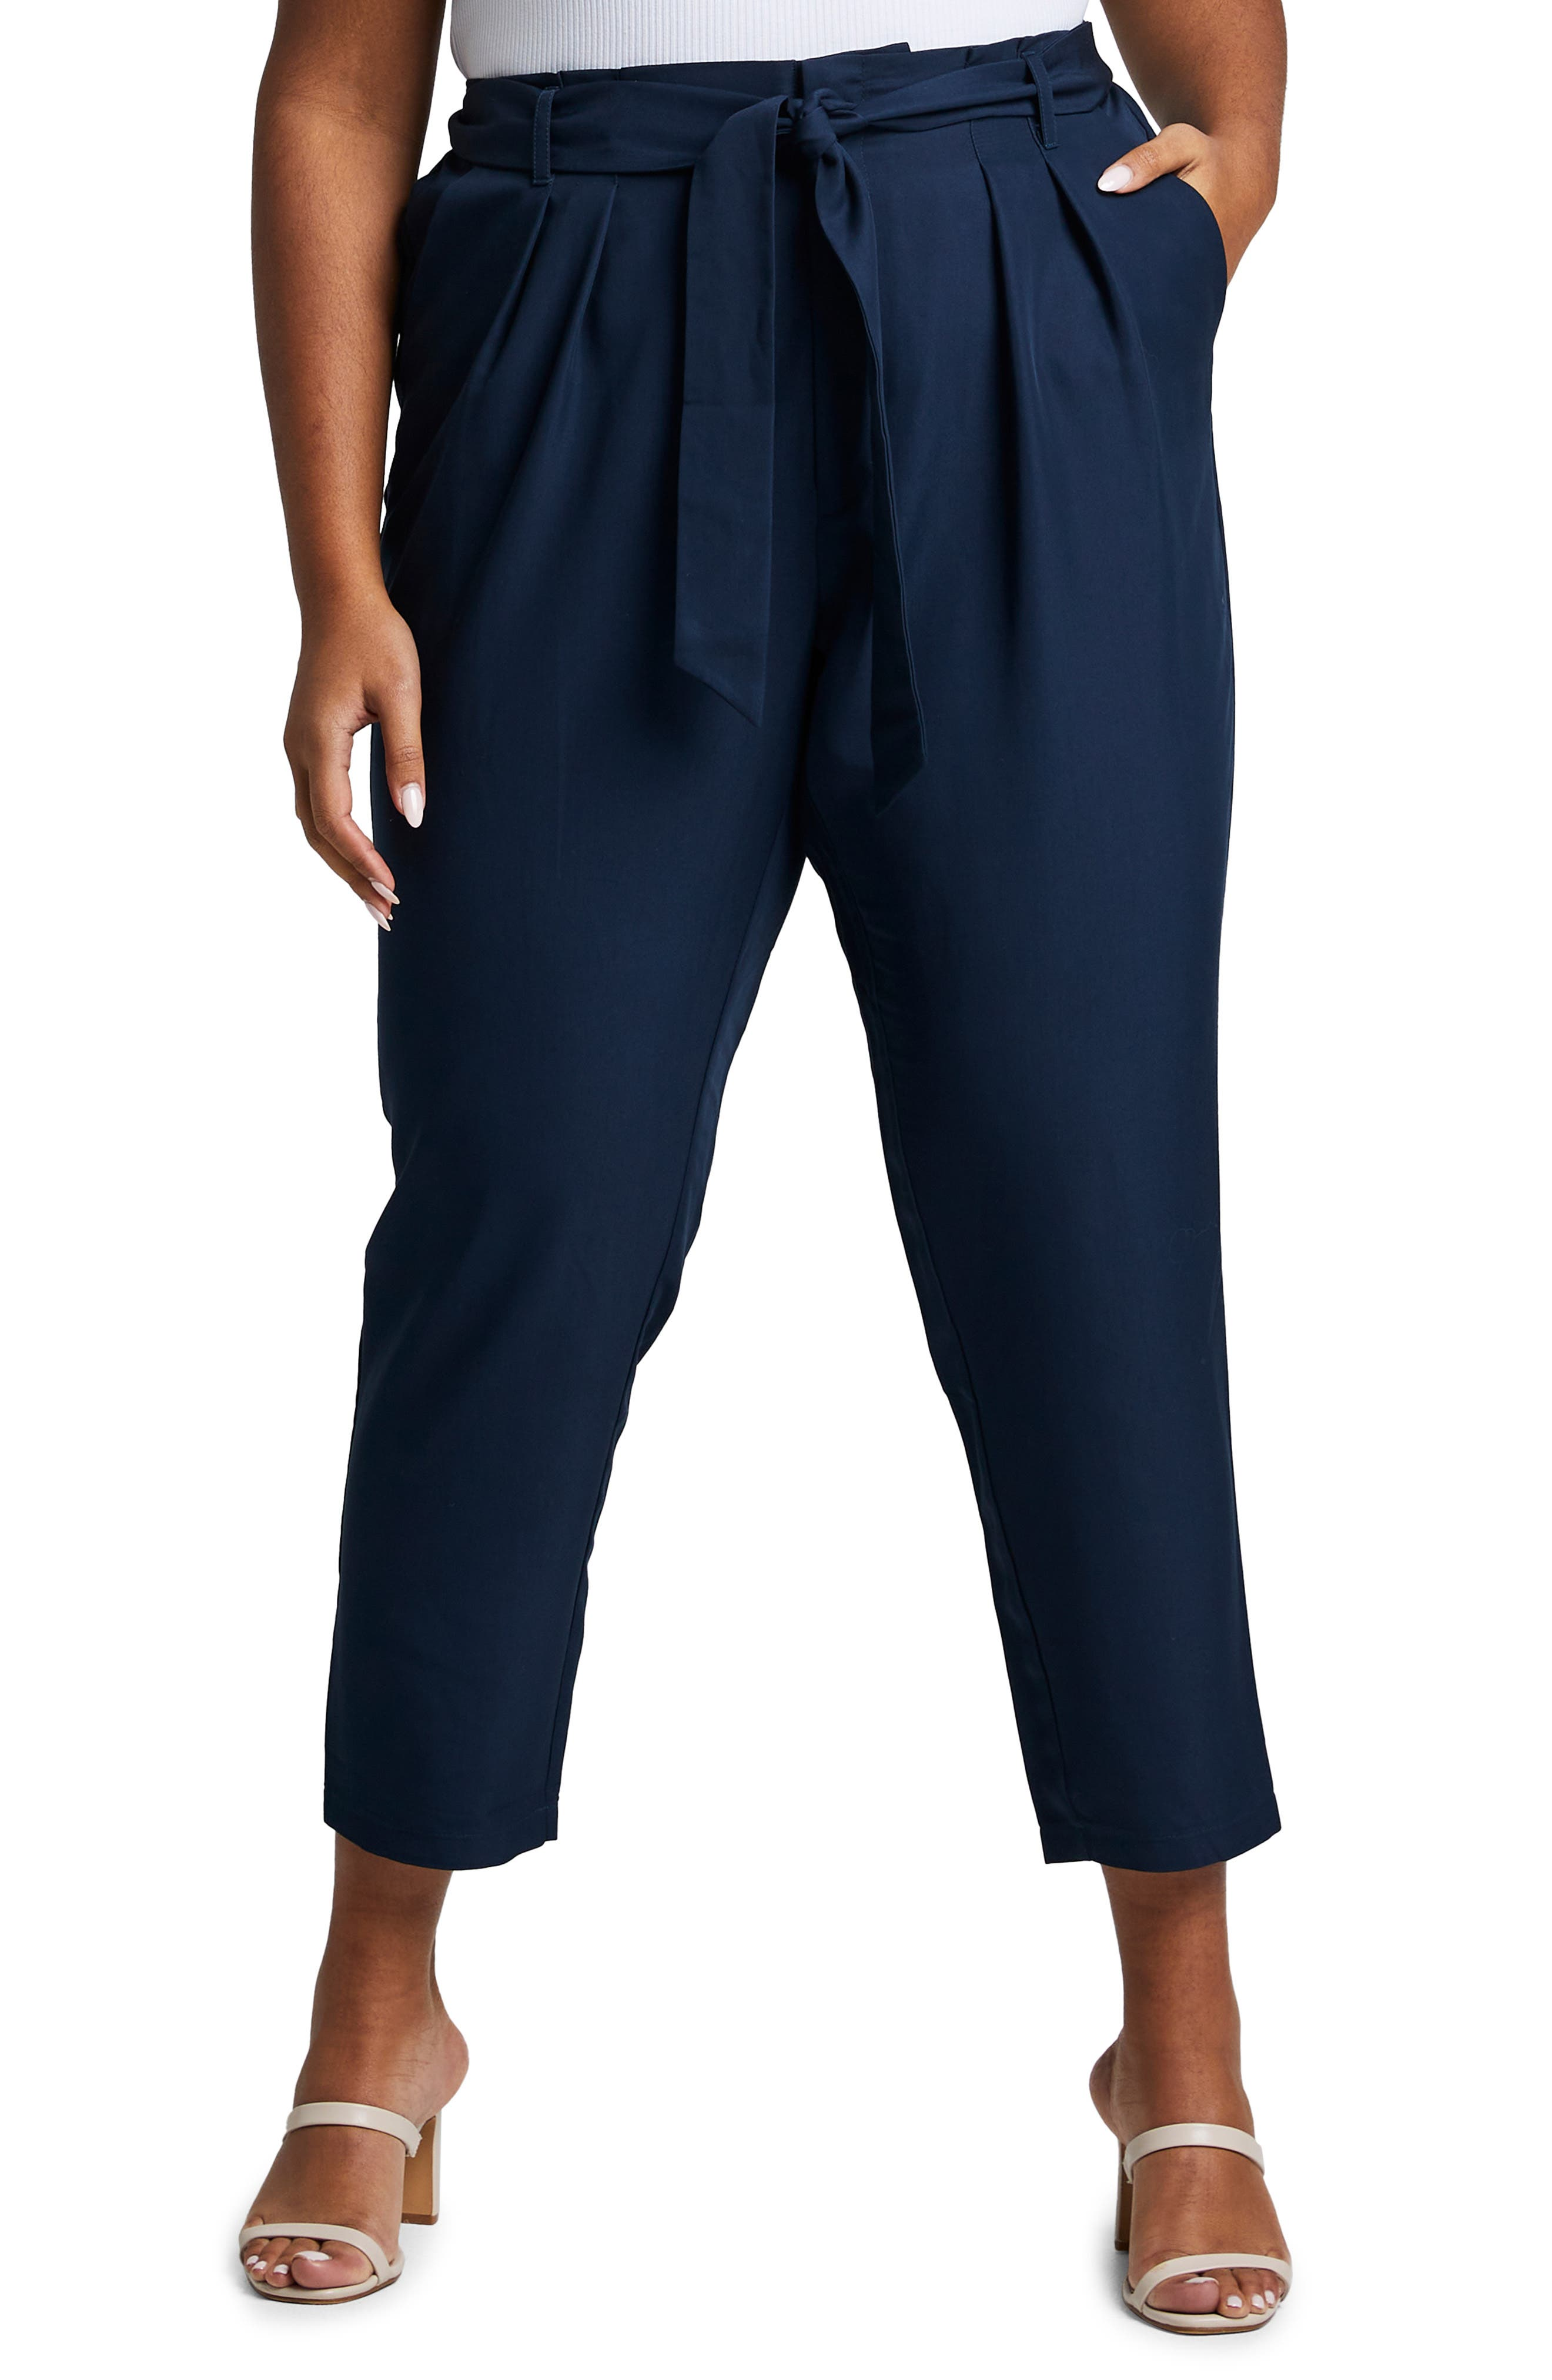 Woodstock Belted Ankle Pants